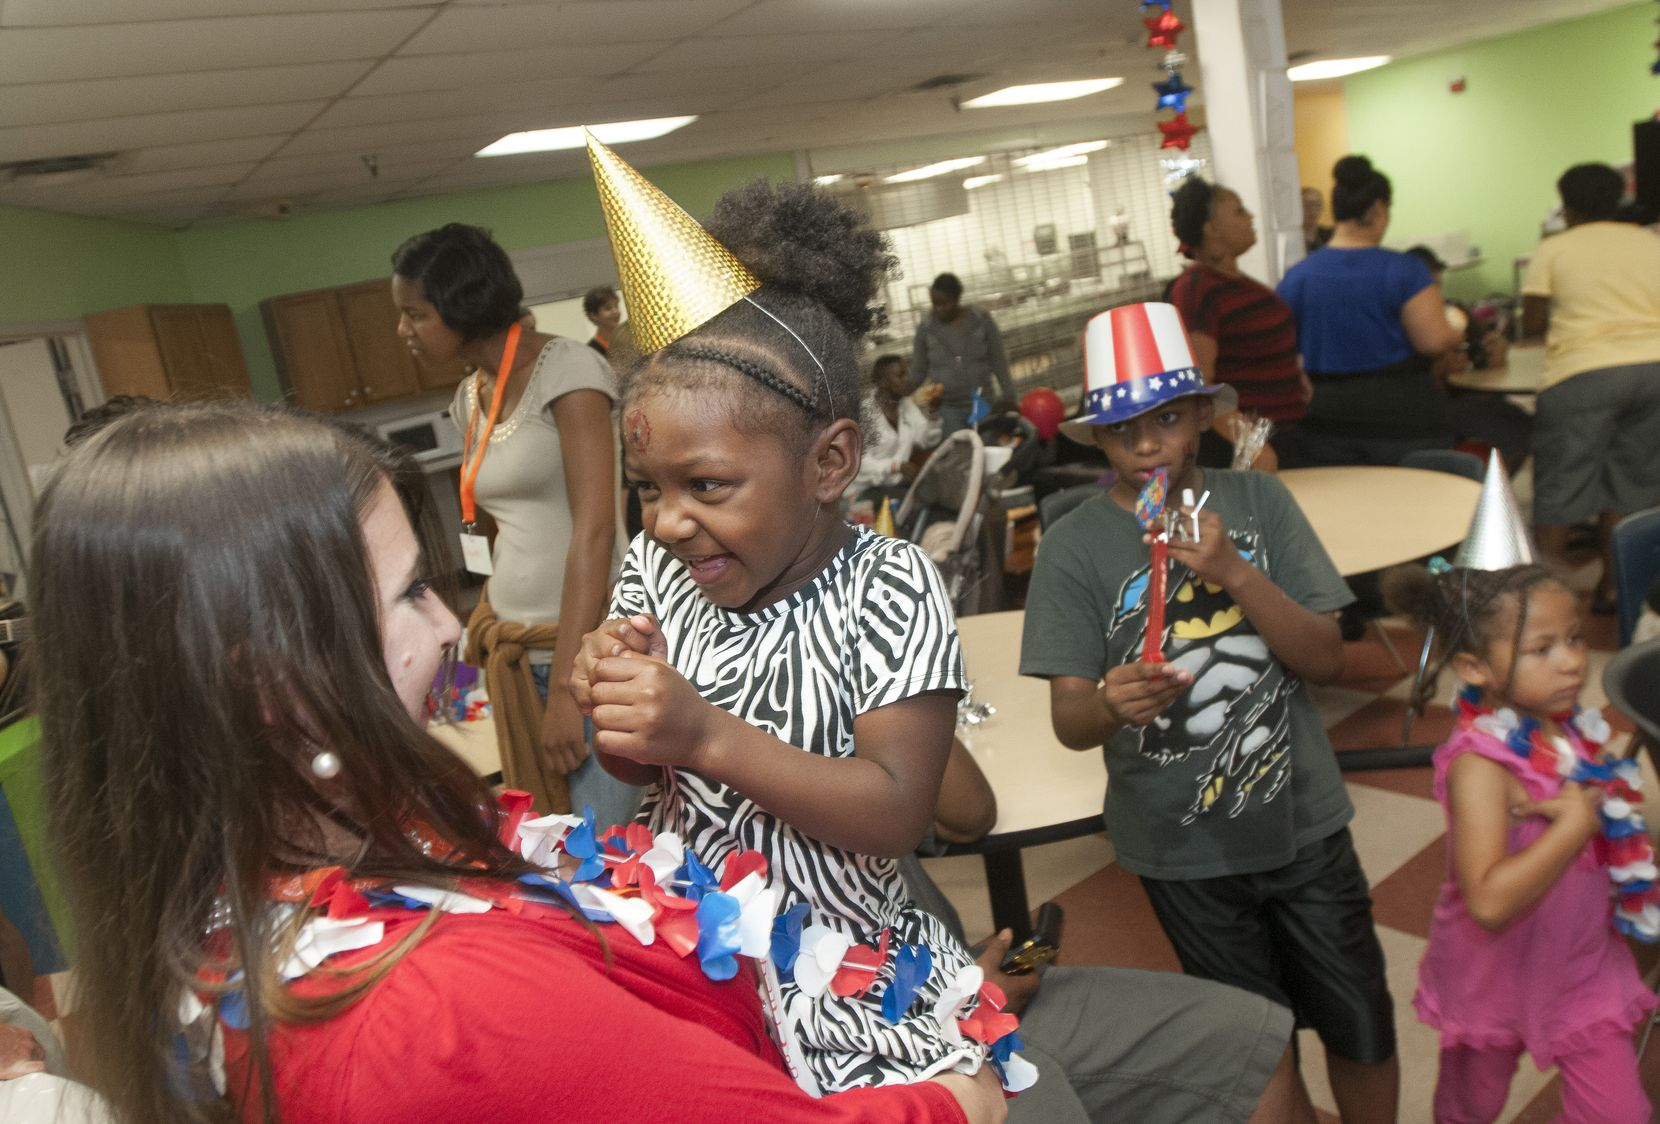 """Courtney Underwood helped organize a birthday party for children at Family Gateway in July 2014 as part of her participation in the Dallas Foundation's """"Good Works Under 40"""" awards."""